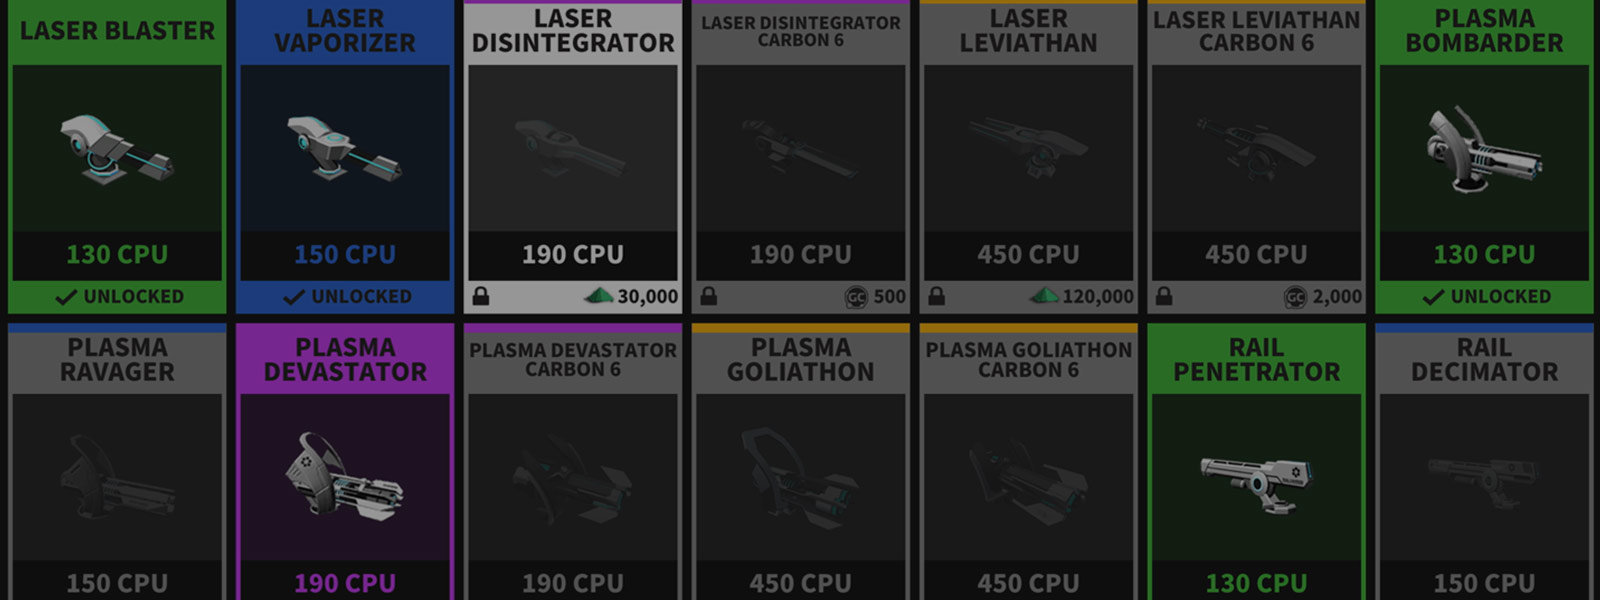 Inventory screen of weapons and components